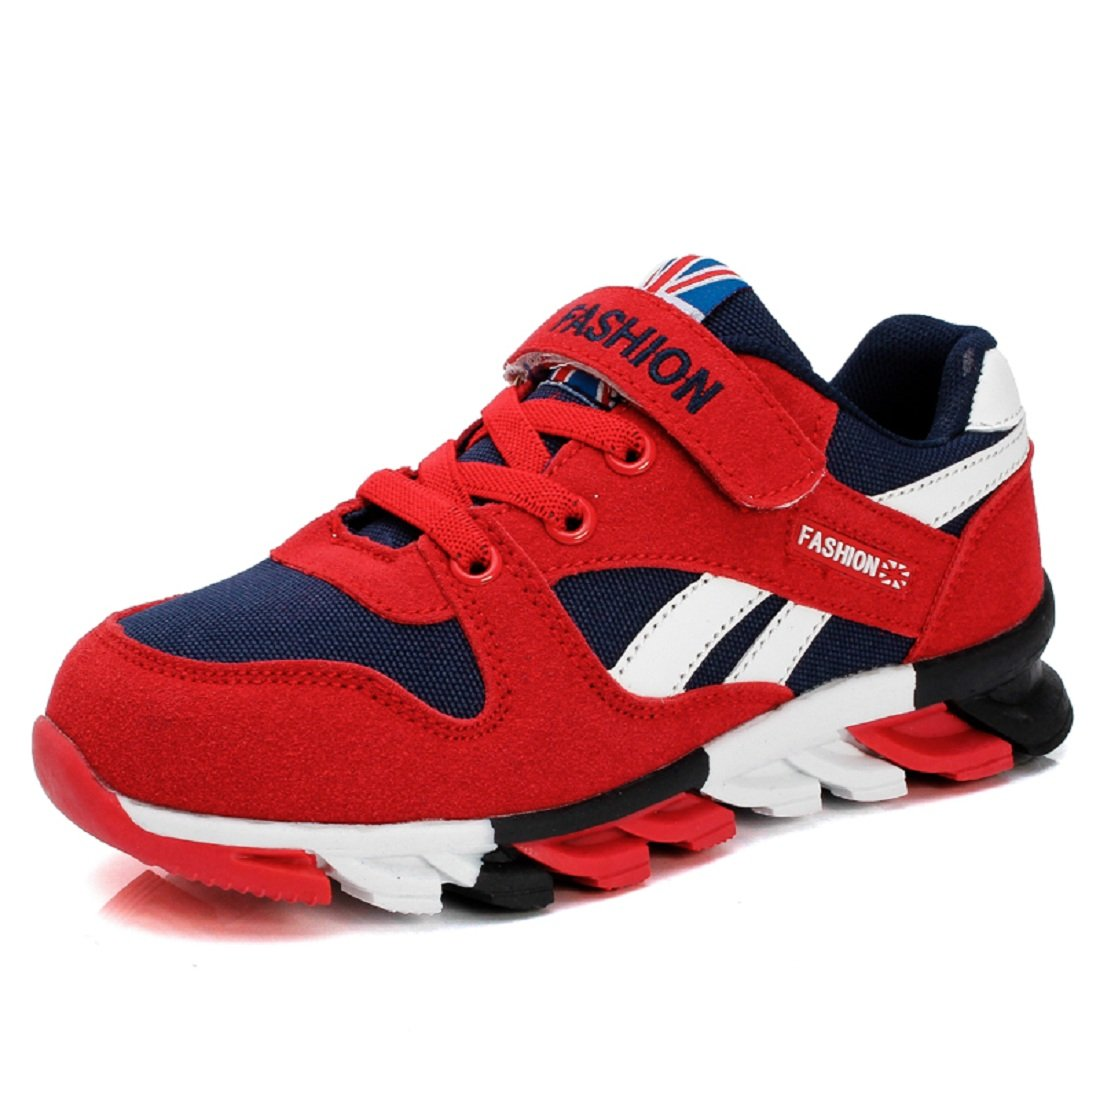 YIBLBOX Kids Lightweight Running Sport Shoes Comfortable Casual Athletic Sneakers For Boys Girls